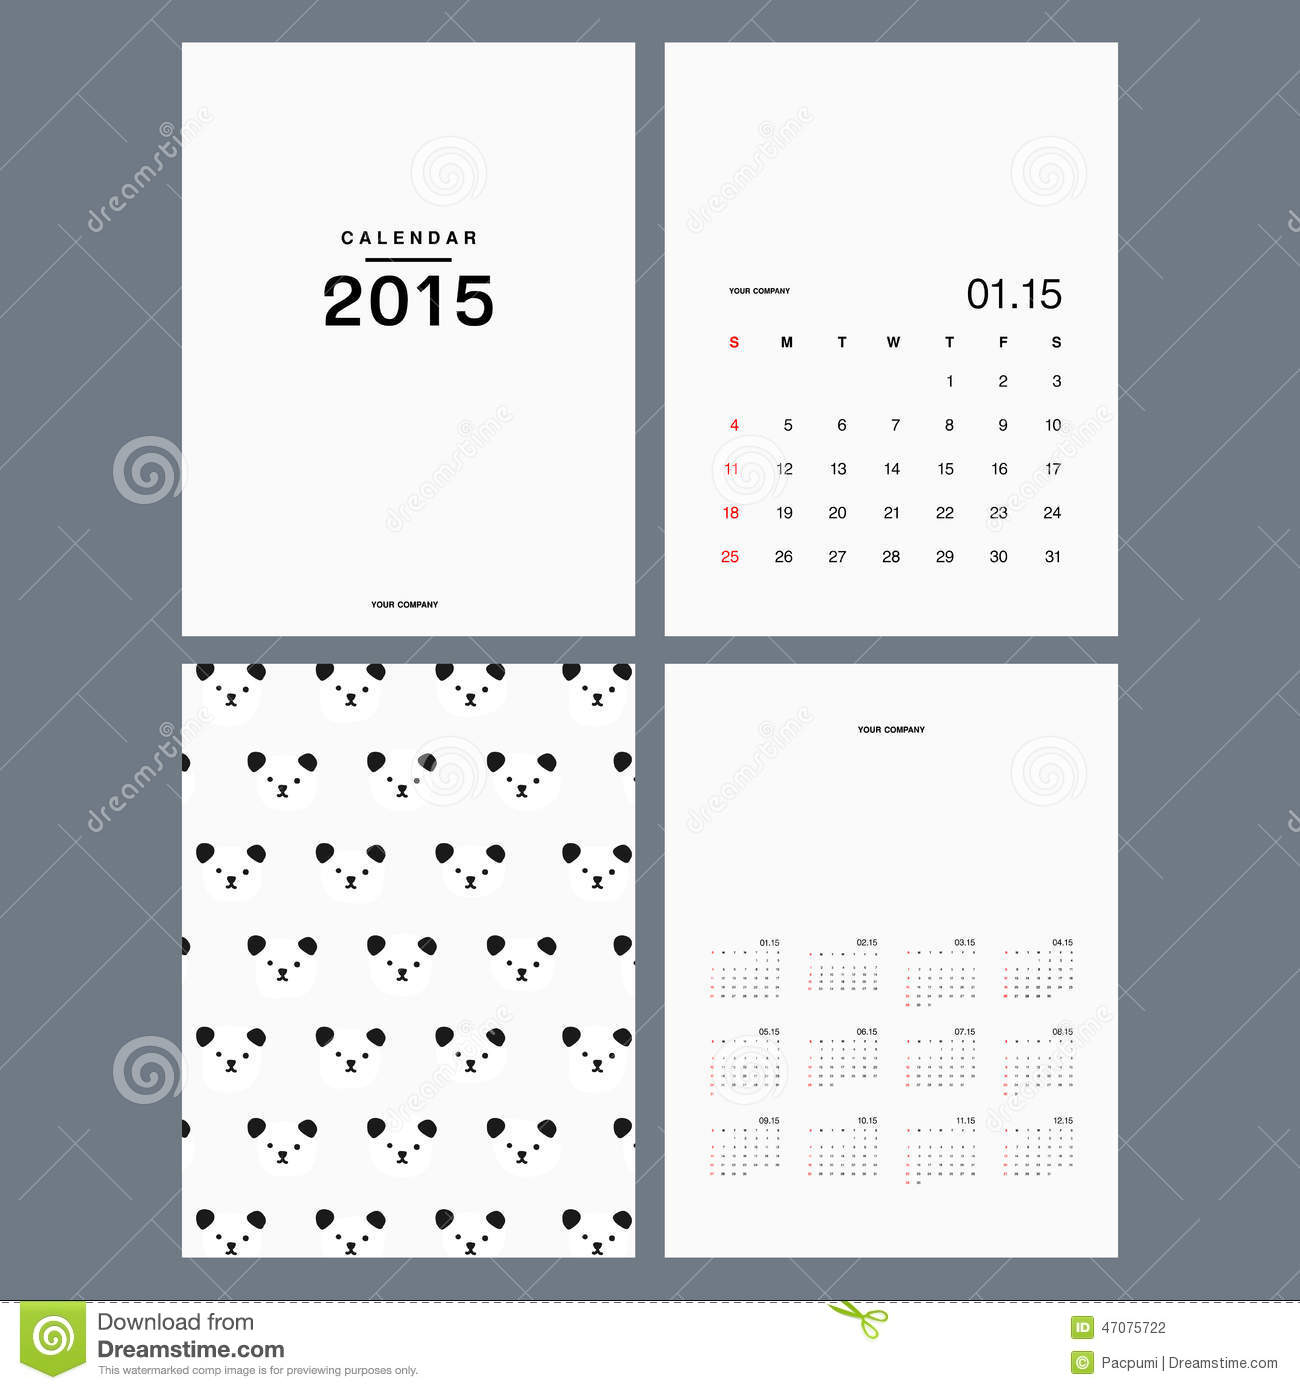 Calendar Design Minimal : Calendar template stock illustration of